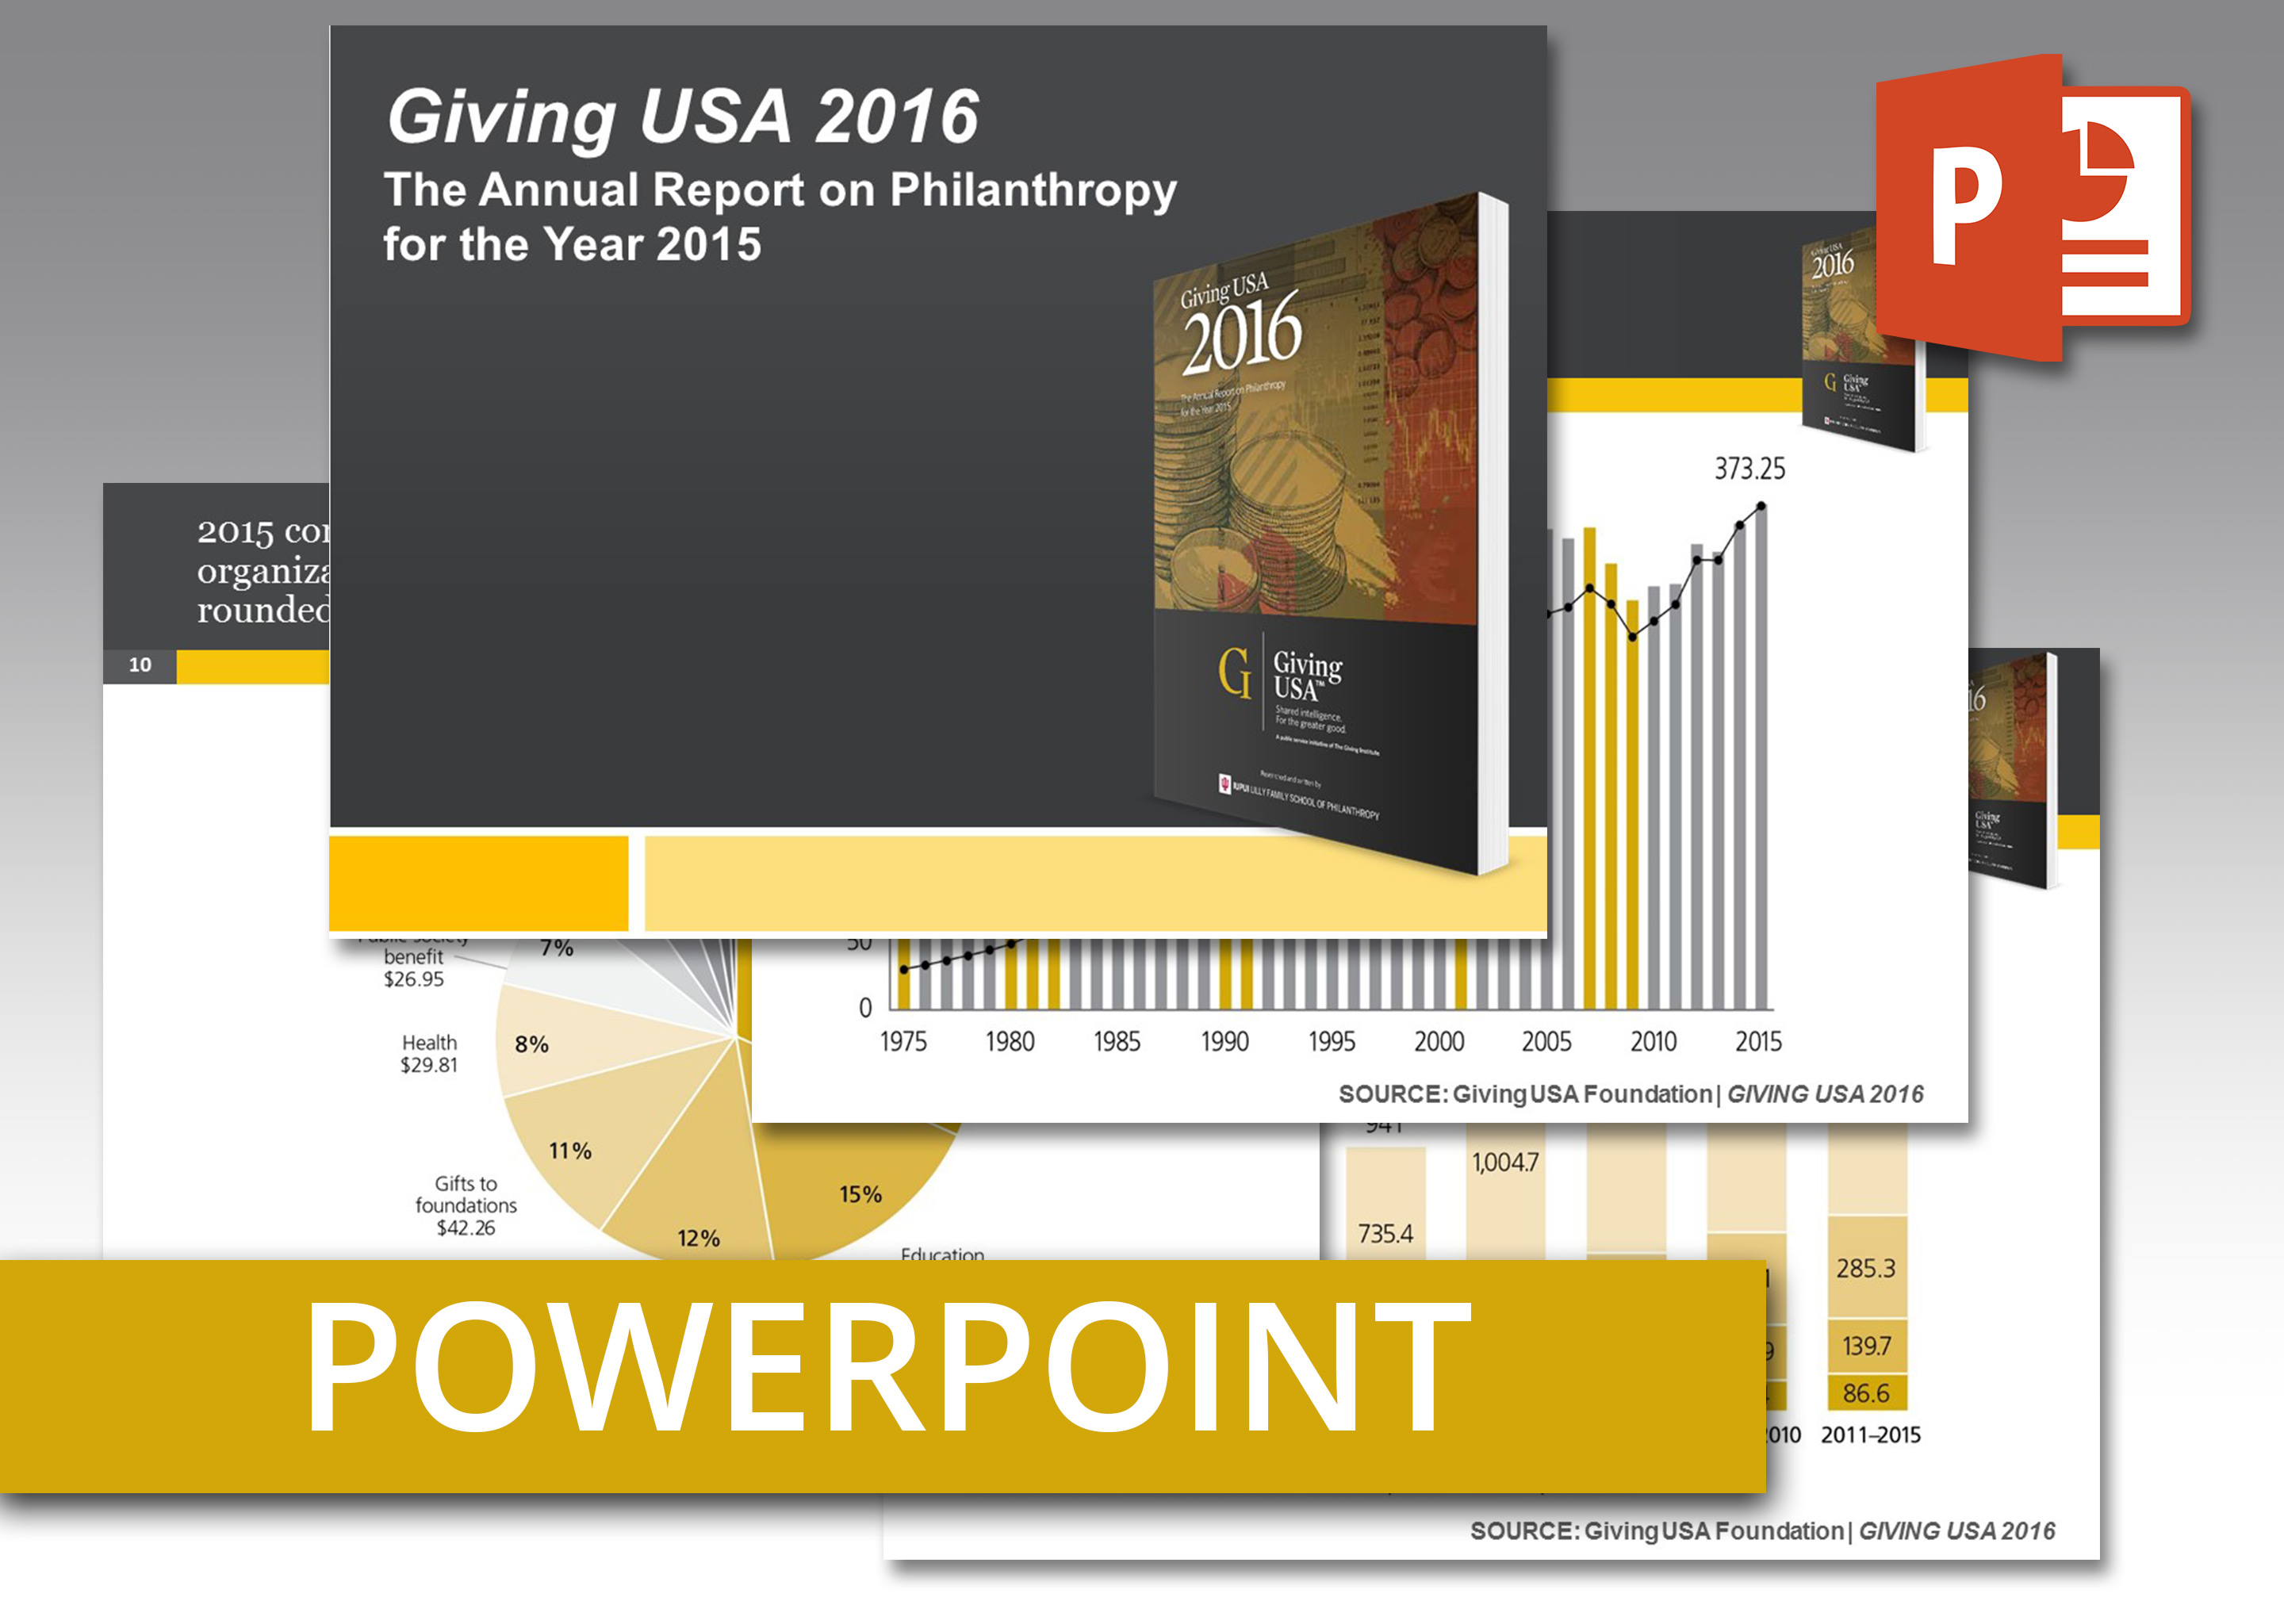 Coolmathgamesus  Splendid Giving Usa  Powerpoint An Easytouse Presentation Of Report  With Excellent Giving Usa  Powerpoint An Easytouse Presentation Of Report Findings Including Talking Points With Extraordinary Animated Graphics For Powerpoint Free Also Free Powerpoint Slides Download In Addition Powerpoint Viewer Portable And Powerpoint Commercial As Well As Where Is Powerpoint Additionally Powerpoint Samples Presentations From Givingusaorg With Coolmathgamesus  Excellent Giving Usa  Powerpoint An Easytouse Presentation Of Report  With Extraordinary Giving Usa  Powerpoint An Easytouse Presentation Of Report Findings Including Talking Points And Splendid Animated Graphics For Powerpoint Free Also Free Powerpoint Slides Download In Addition Powerpoint Viewer Portable From Givingusaorg